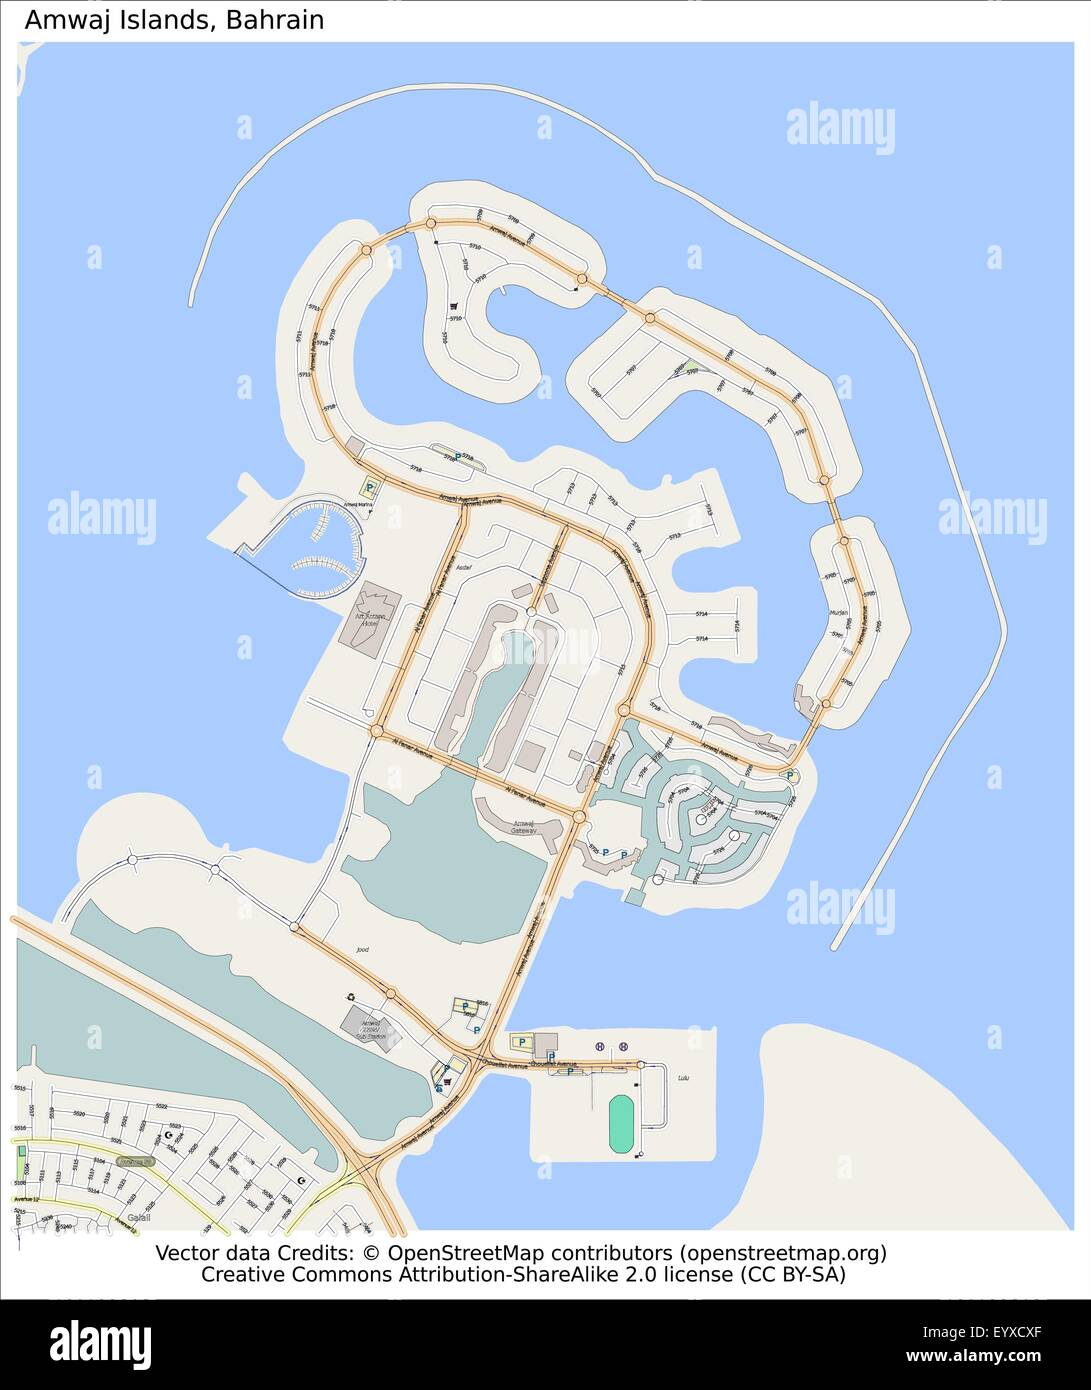 Amwaj islands Bahrain Country city island state location map Stock ...